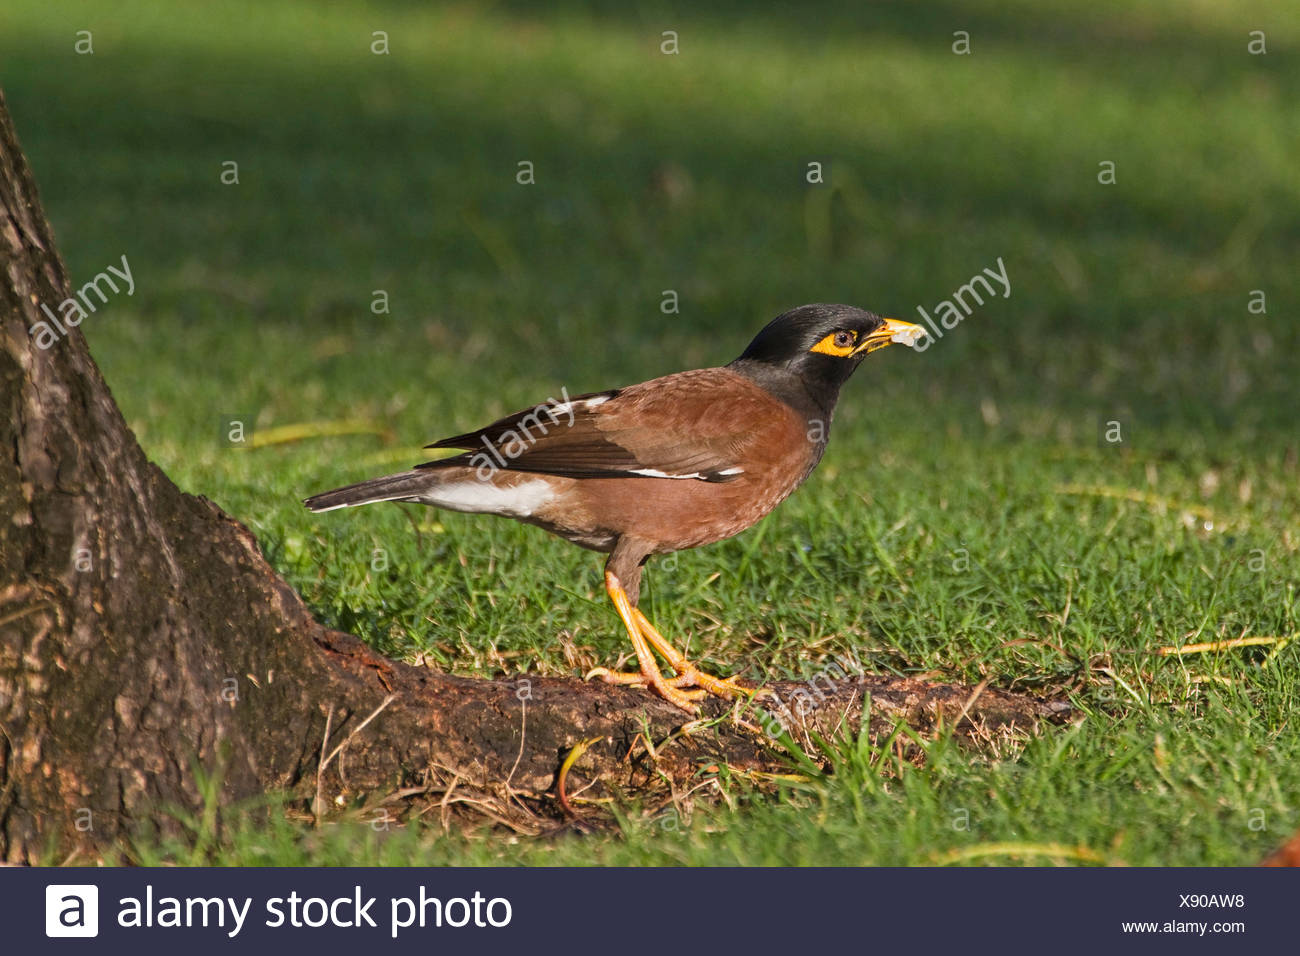 common mynah (Acridotheres tristis), in a park, Australia, Queensland, Townsville - Stock Image